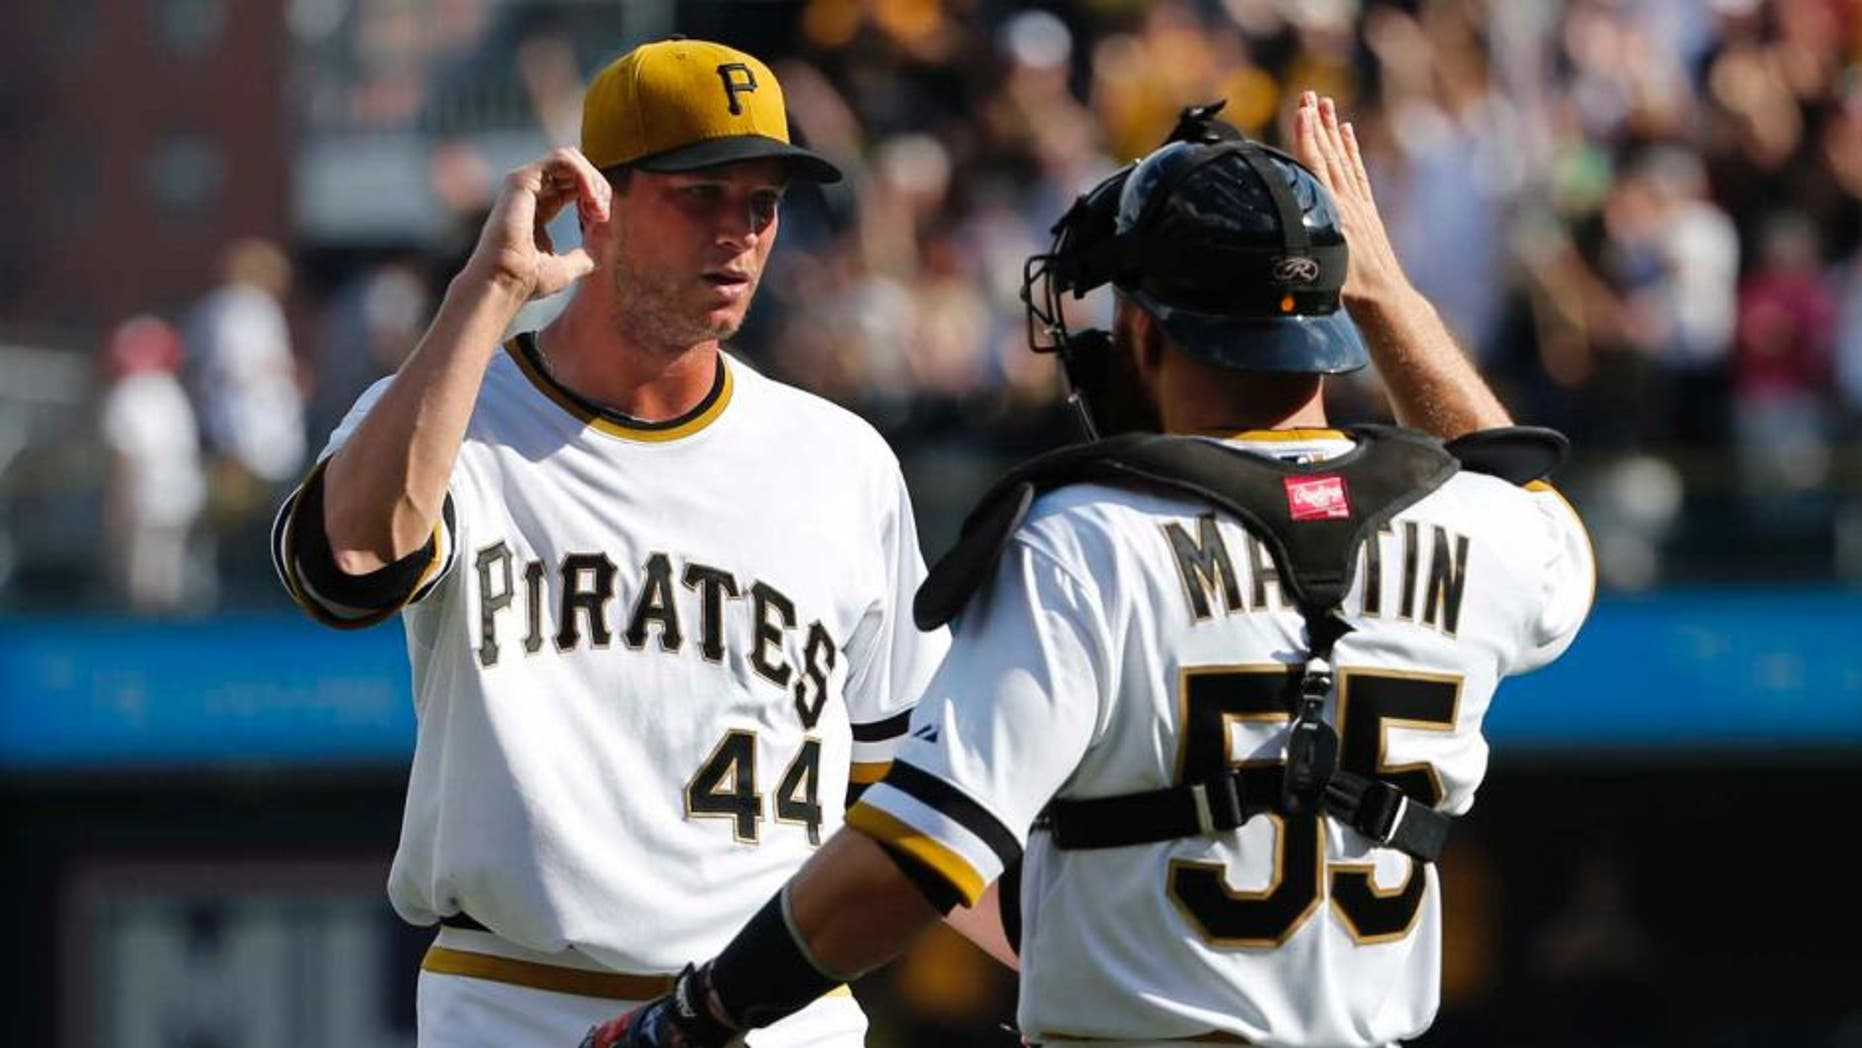 Sunday, September 21: Pittsburgh Pirates relief pitcher Tony Watson (left) celebrates with catcher Russell Martin after getting the final out of the ninth inning. The Pirates won 1-0.